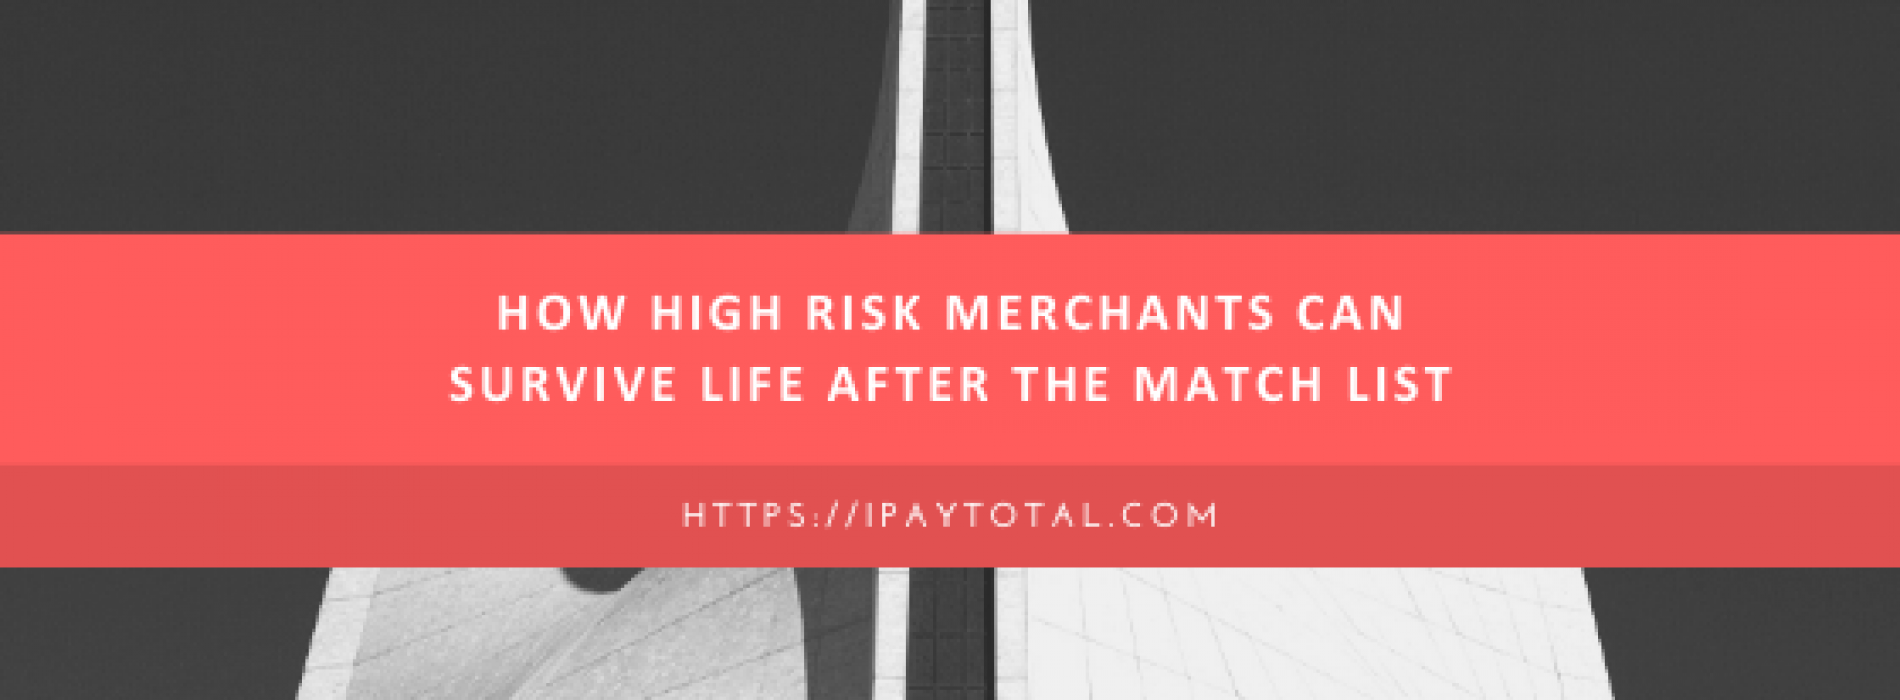 How High Risk Merchants Can Survive Life After the MATCH List